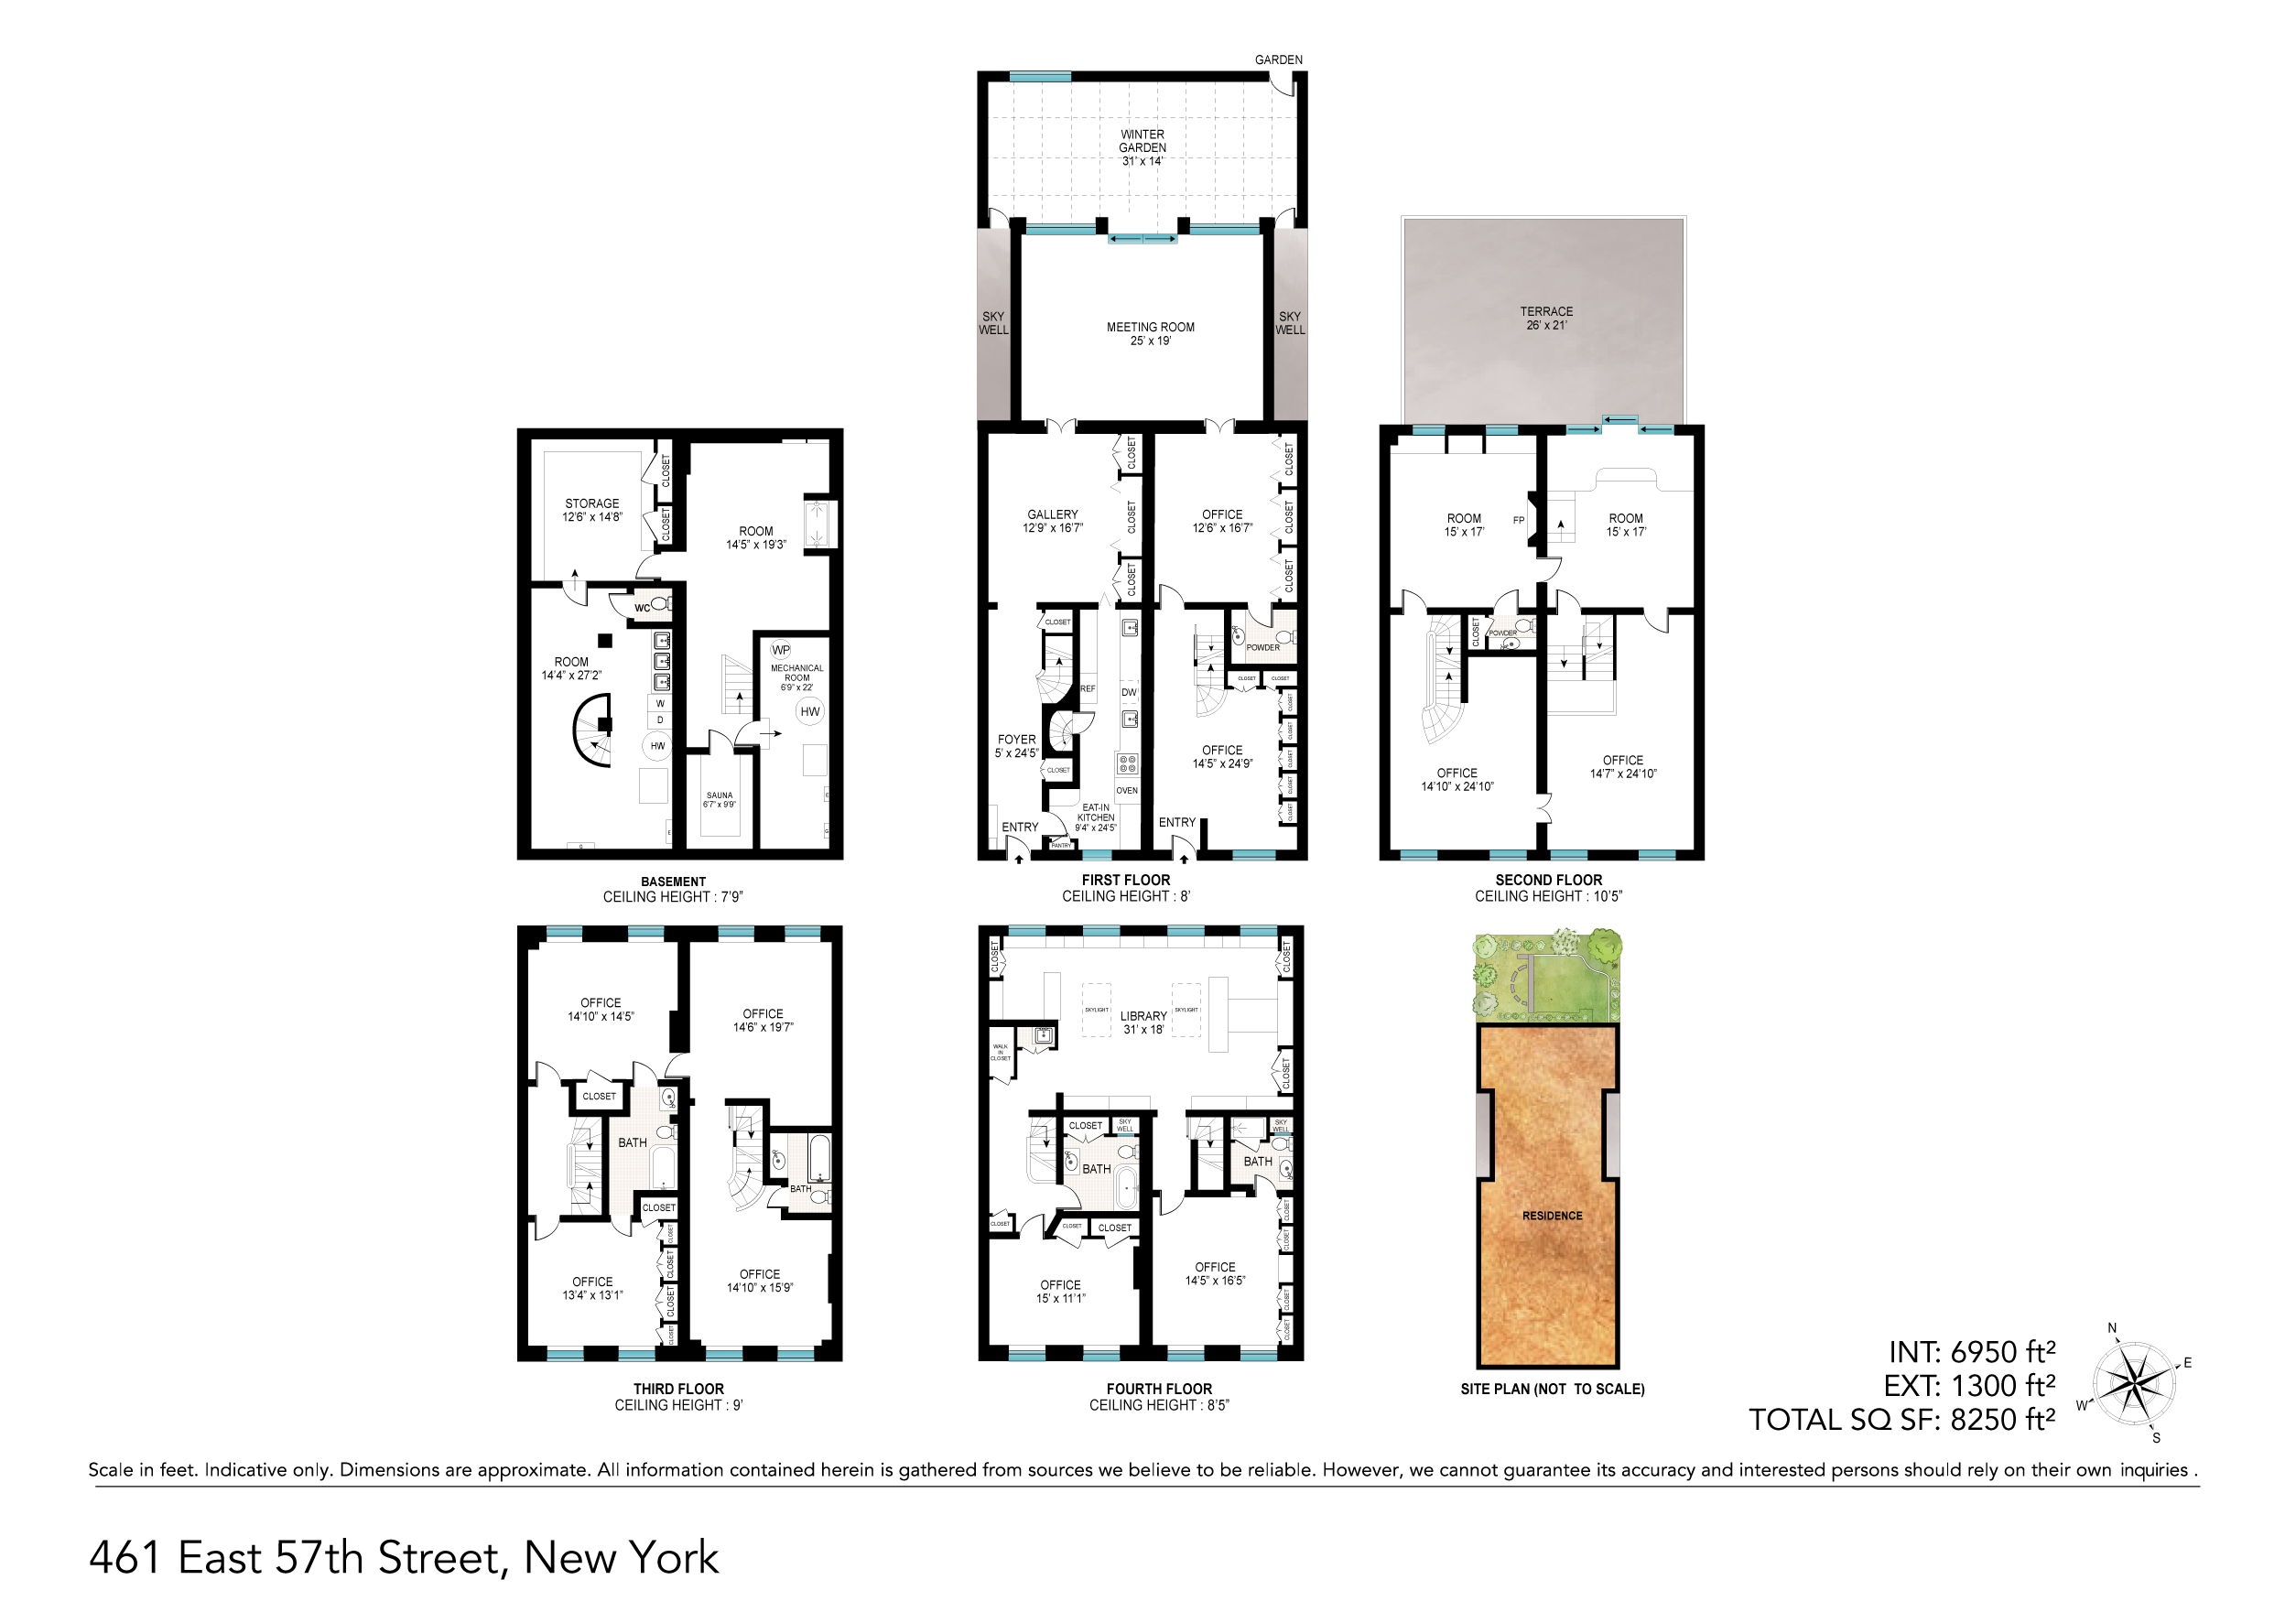 461 East 57th Street, Sutton Place, New York